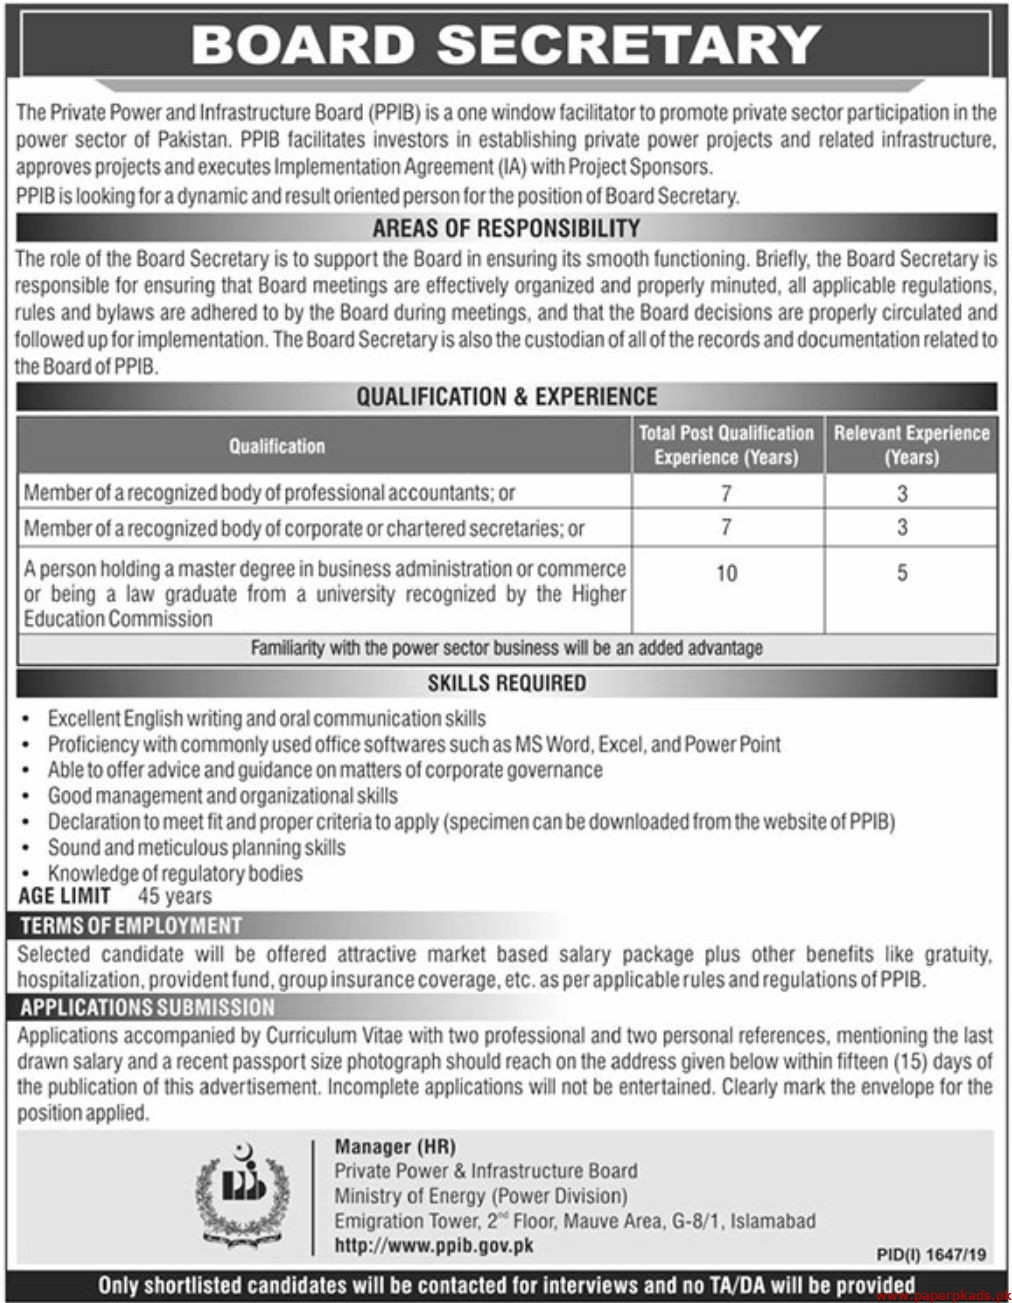 The Private Power and Infrastructure Board PPIB Jobs 2019 Latest